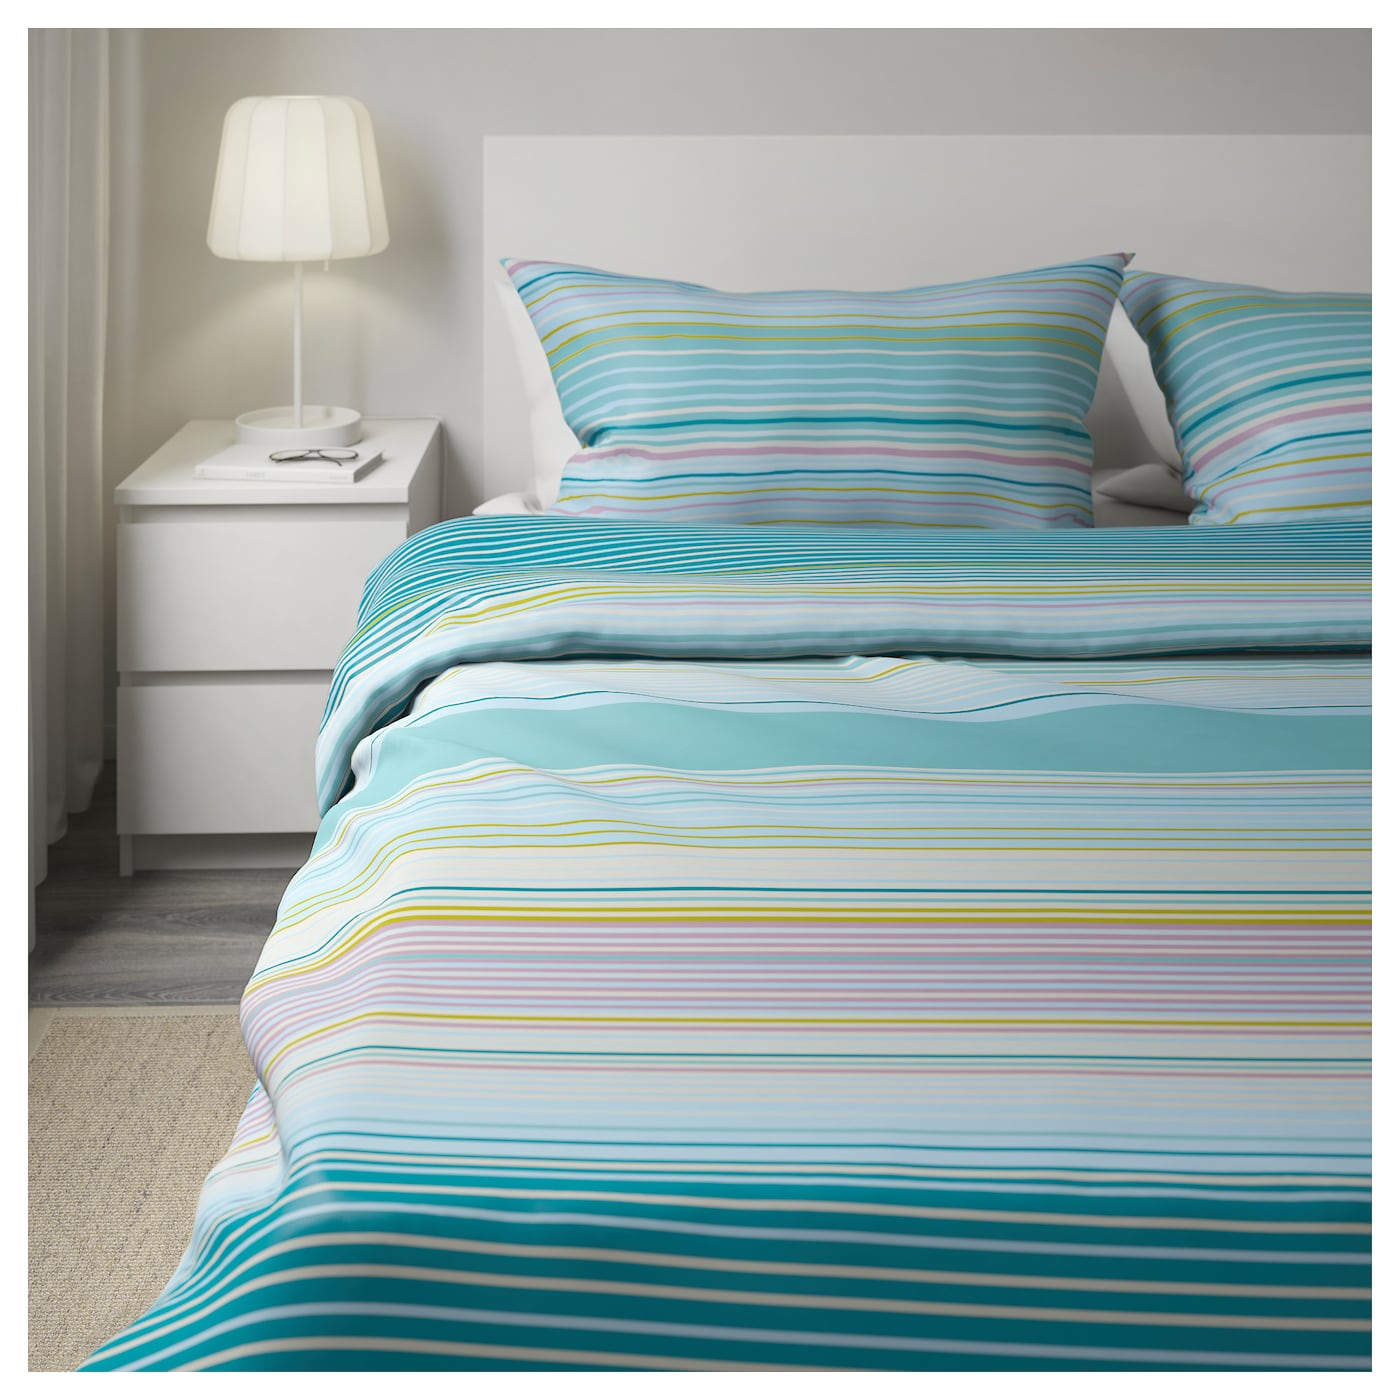 palmlilja quilt cover and 4 pillowcases turquoise 200x200 50x80 cm ikea. Black Bedroom Furniture Sets. Home Design Ideas